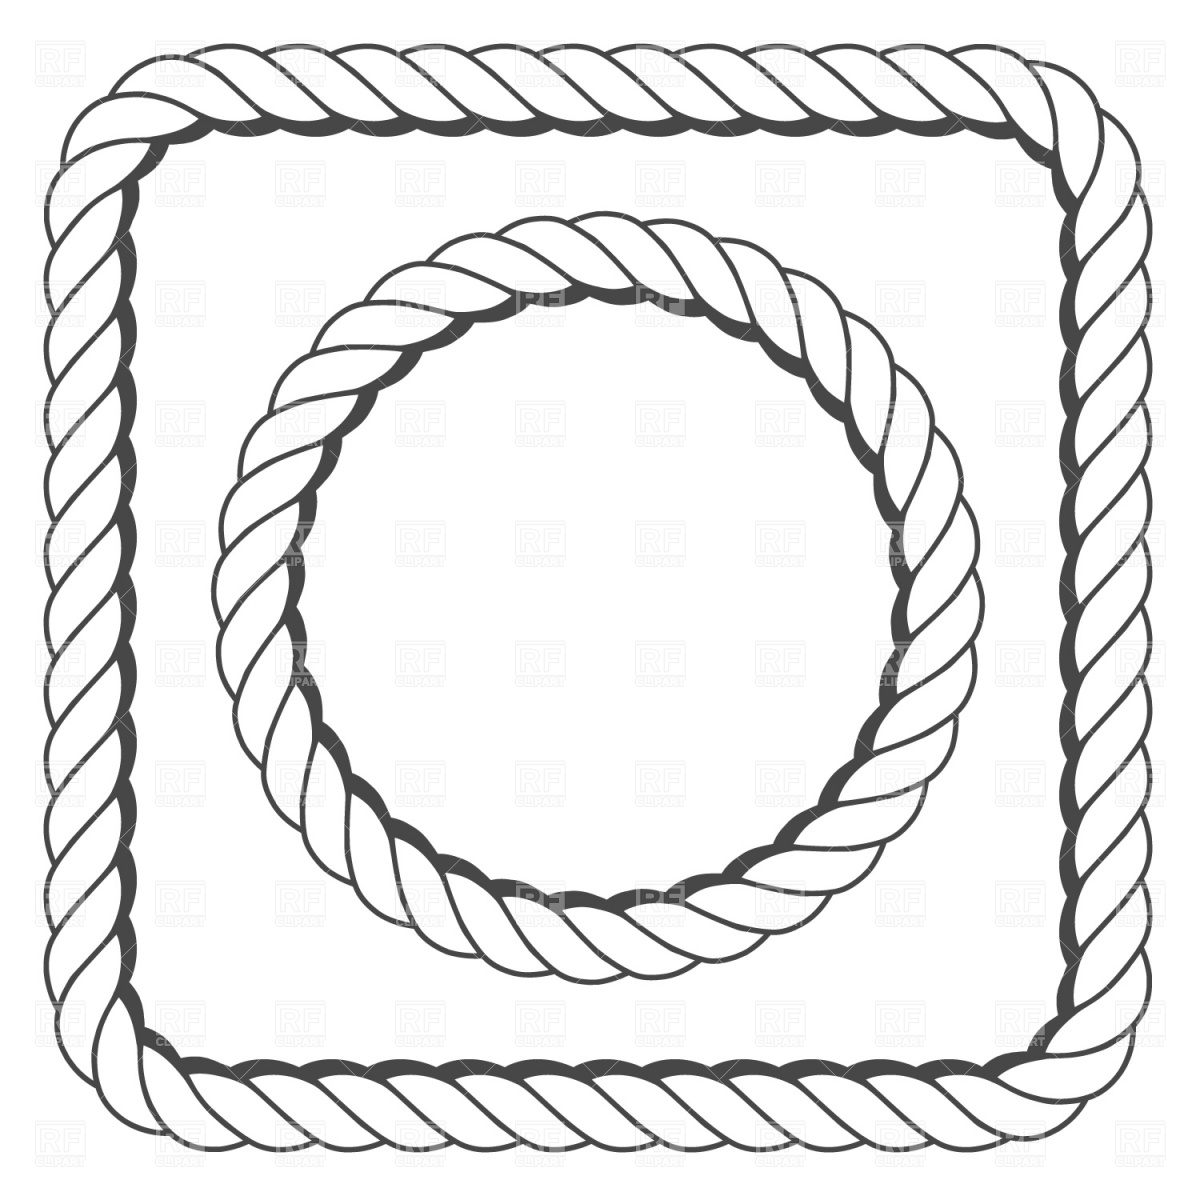 clipart rope border circle - photo #19